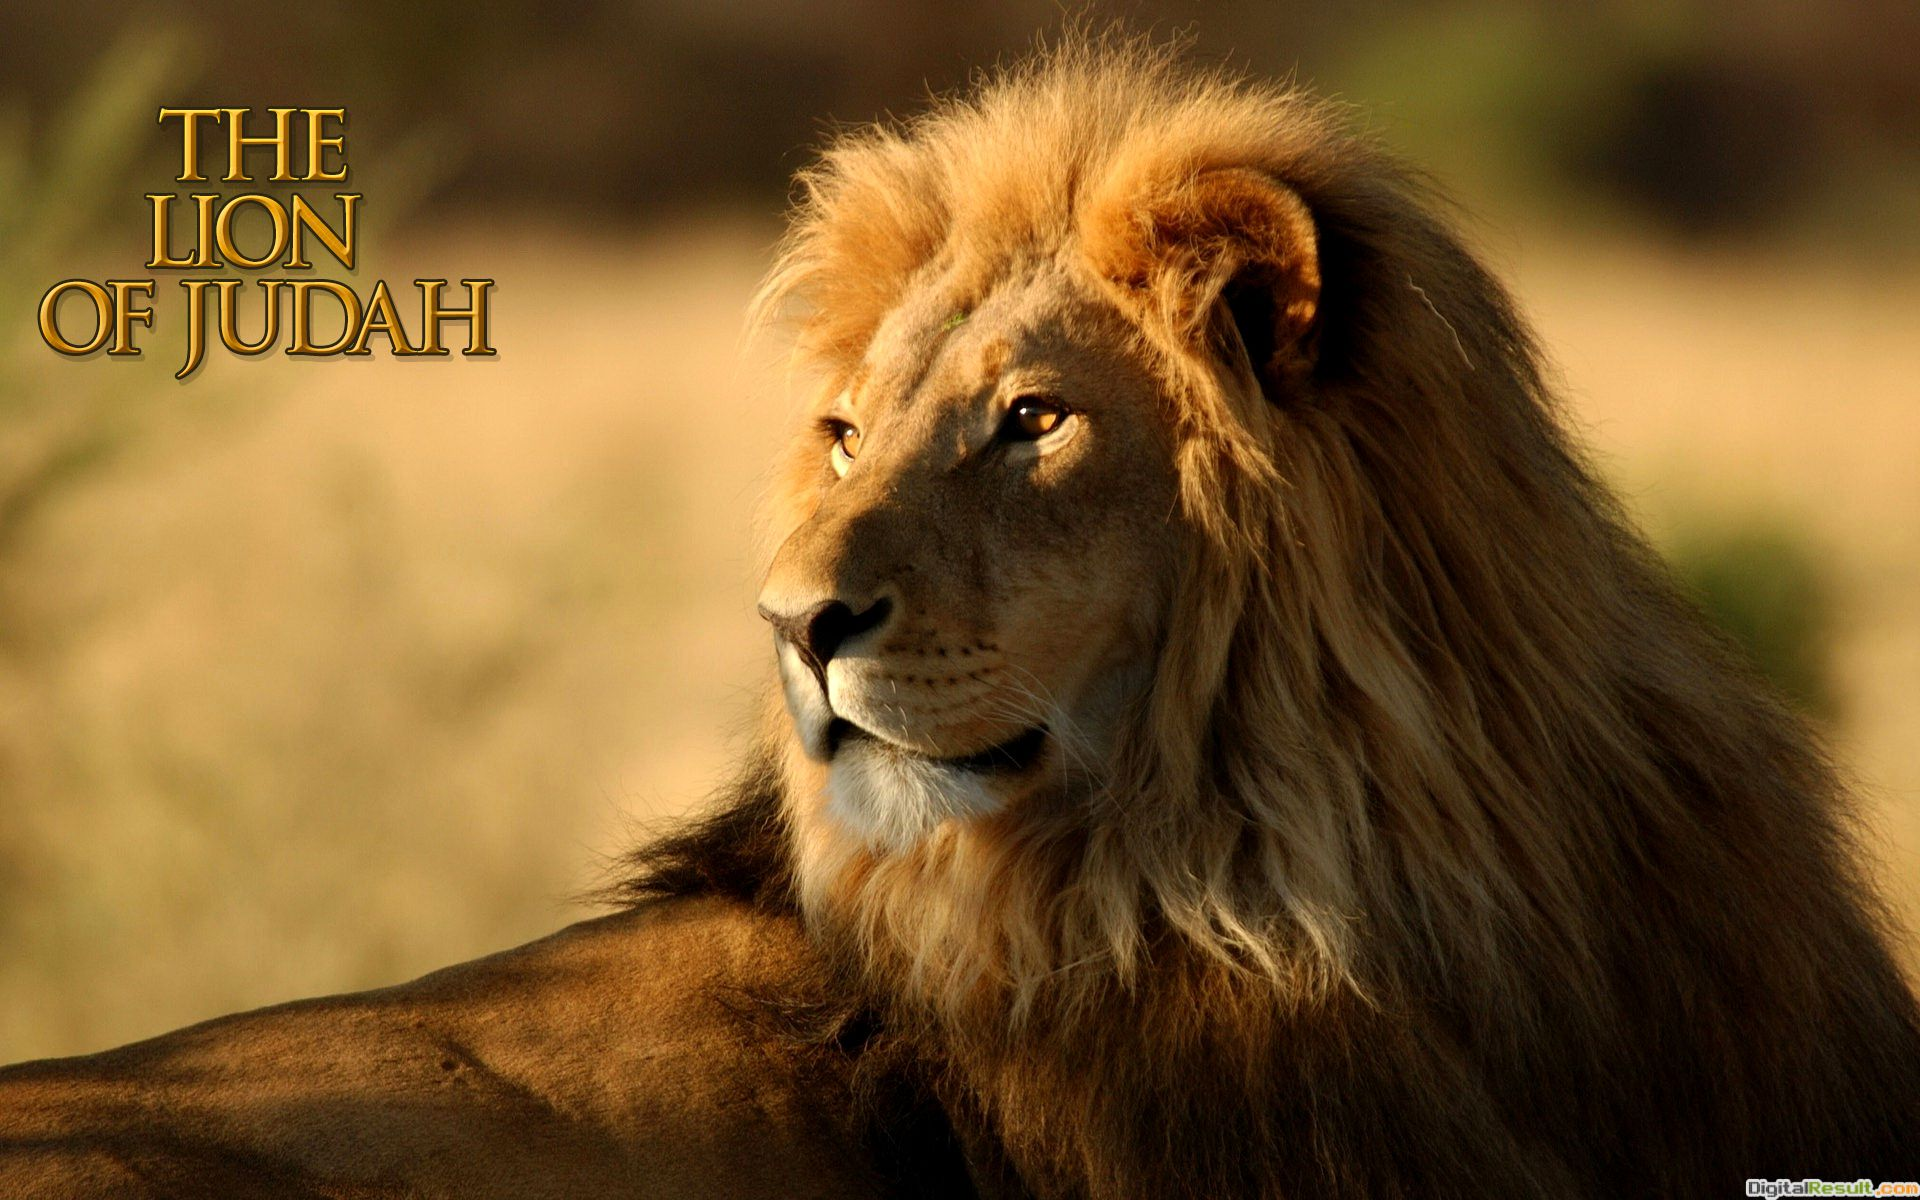 The Lion Of Judah HD Wallpaper Download this free Christian image free